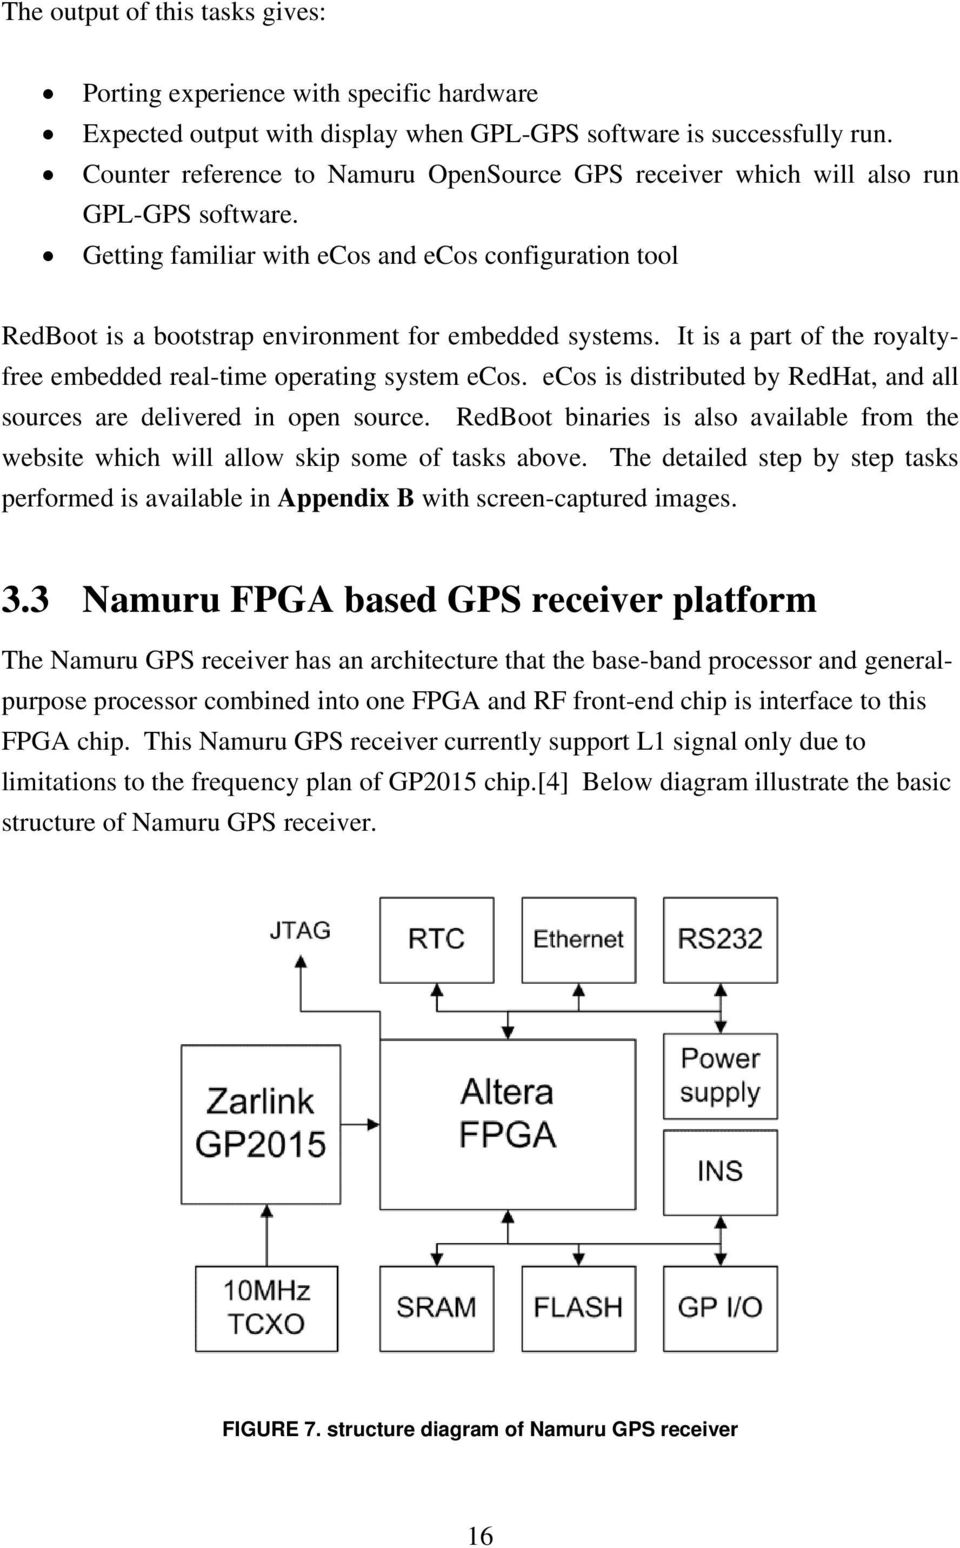 Open Source Software Development For Unsw Fpga Based Gps Receiver Pdf Circuitdiagramtointerfacerfreceiverwithfpga Getting Familiar With Ecos And Configuration Tool Redboot Is A Bootstrap Environment Embedded Systems